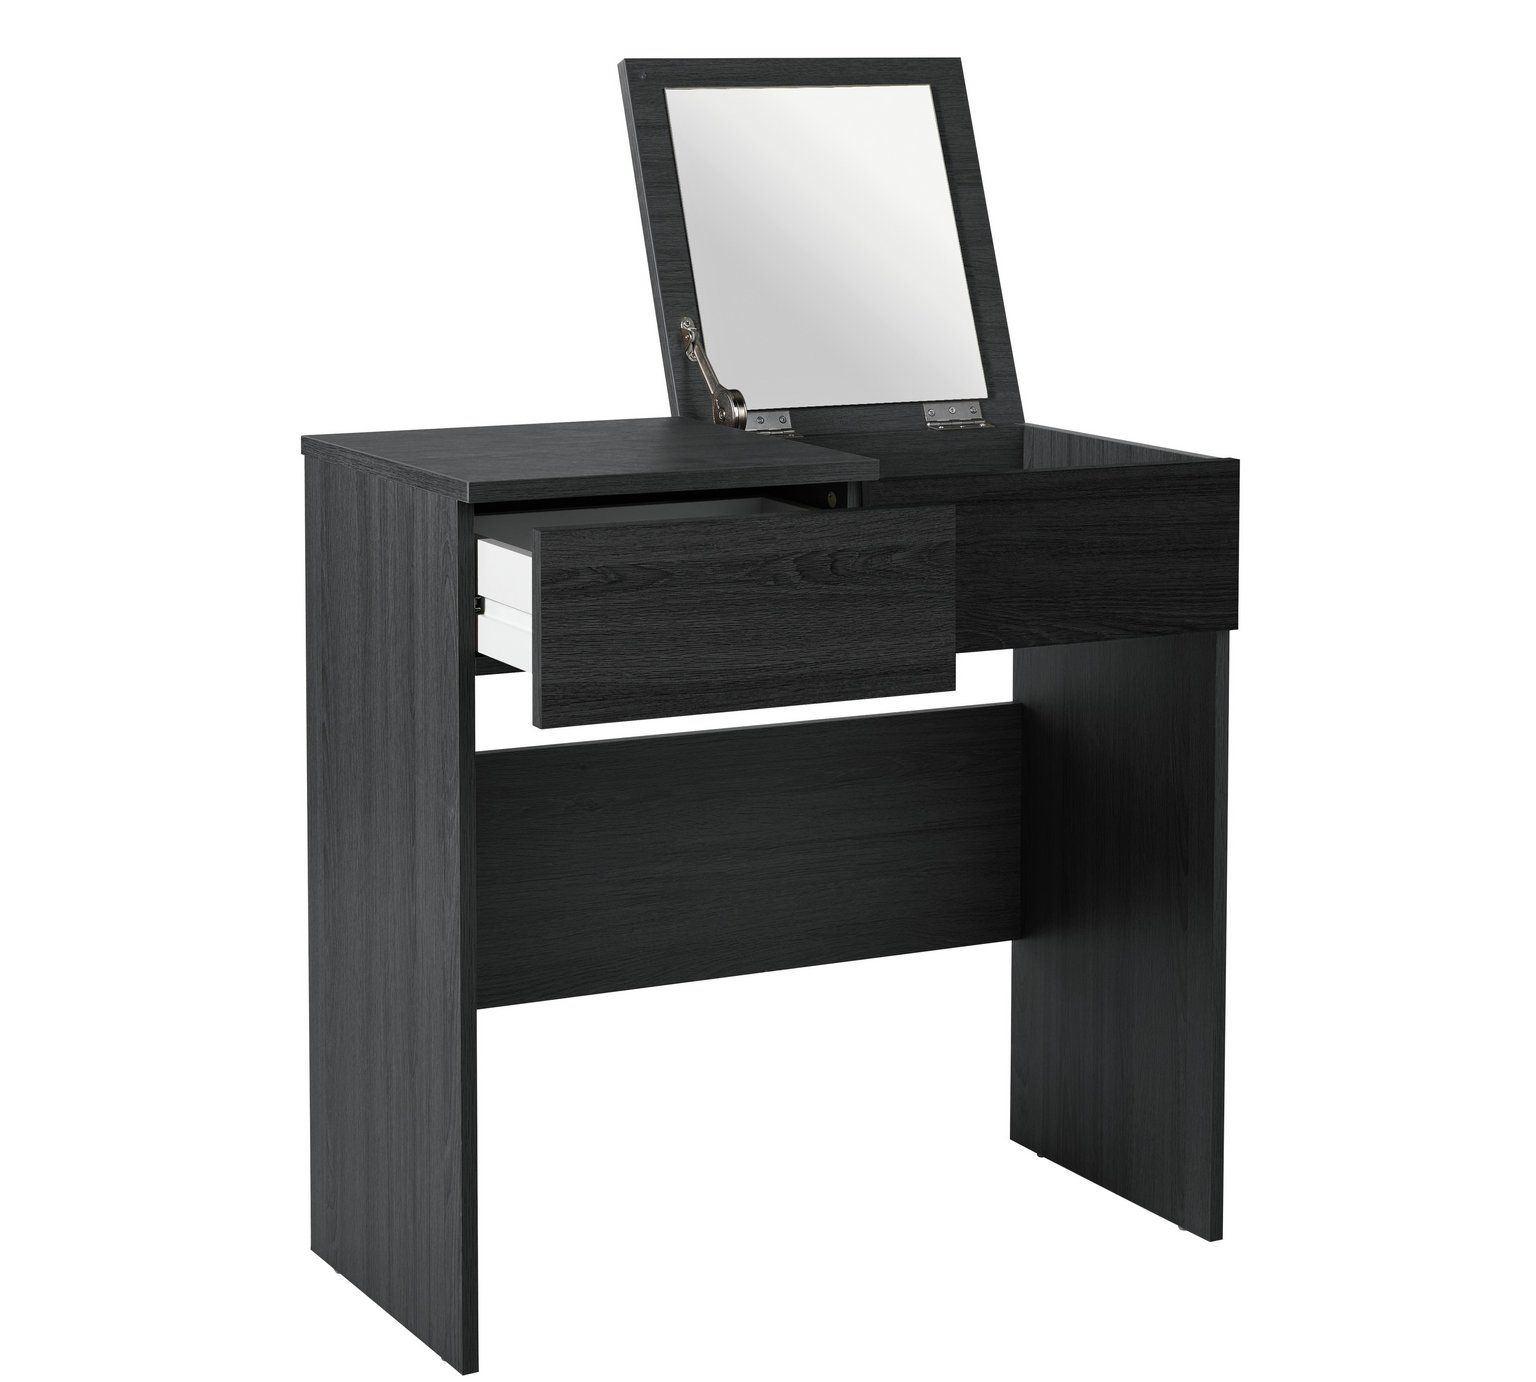 Dressing table with mirror buy home malibu dressing table with mirror  black oak effect at